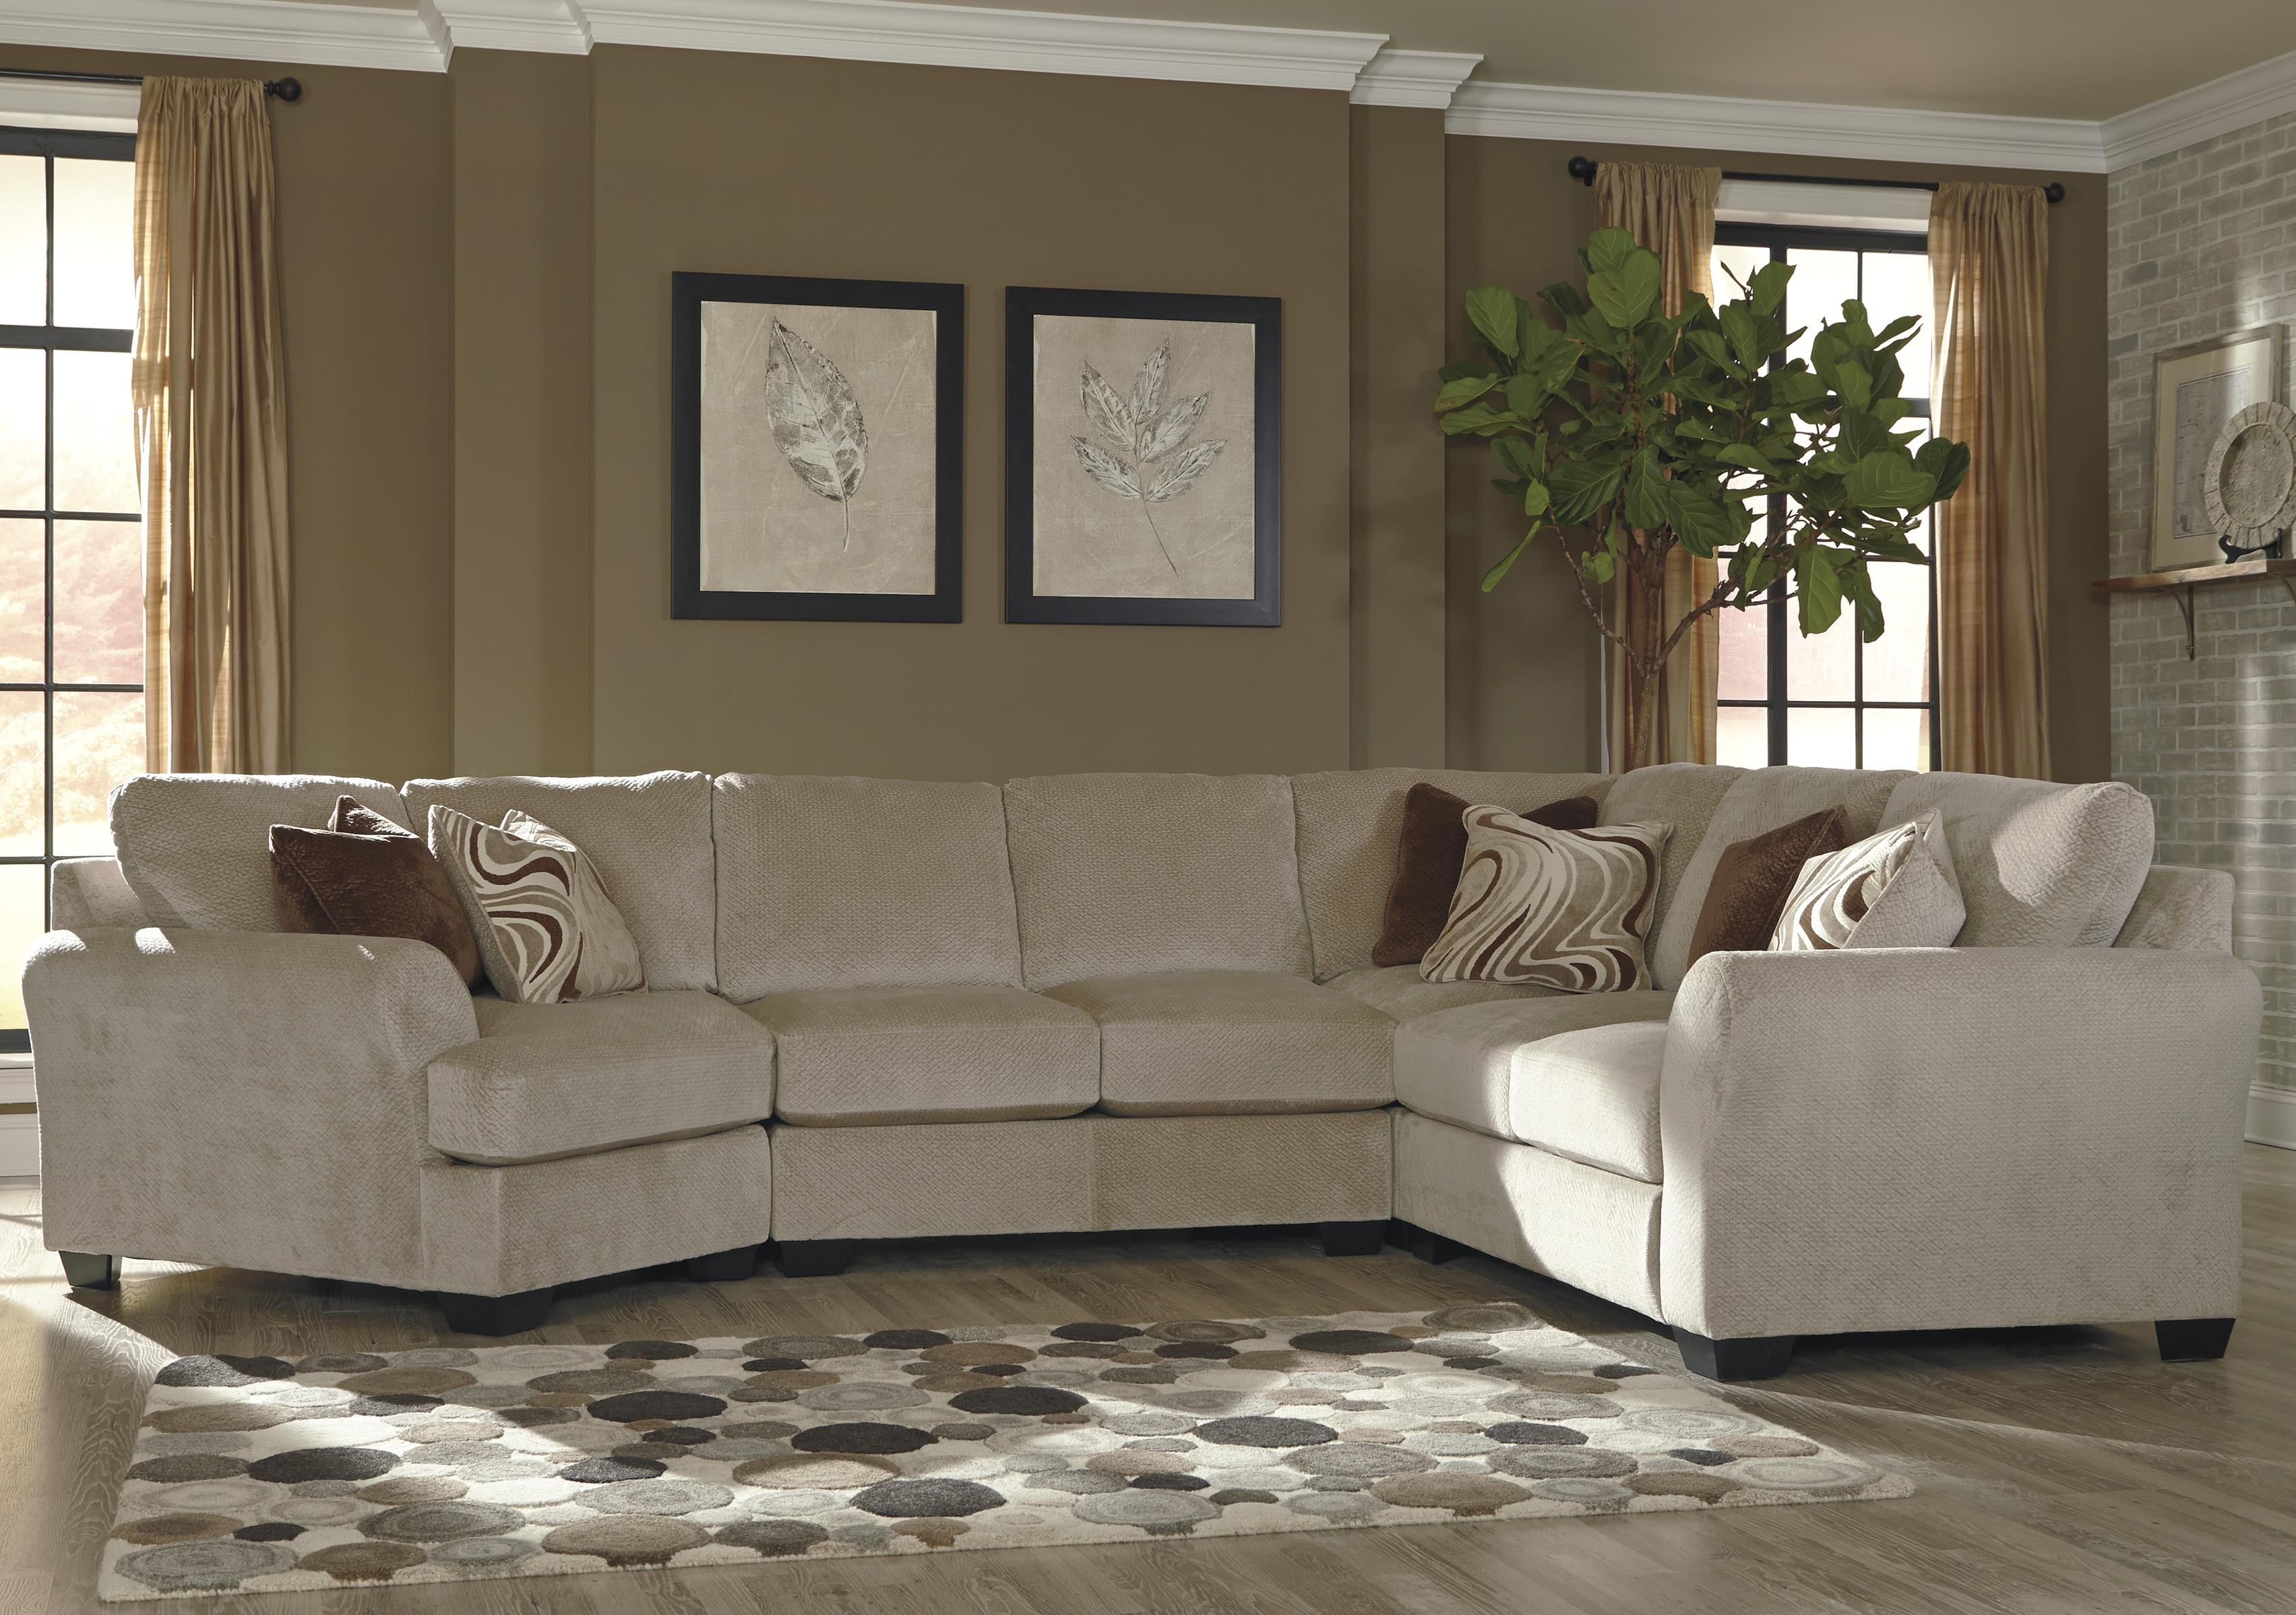 4-Piece Sectional w/ Left Cuddler : left cuddler sectional - Sectionals, Sofas & Couches